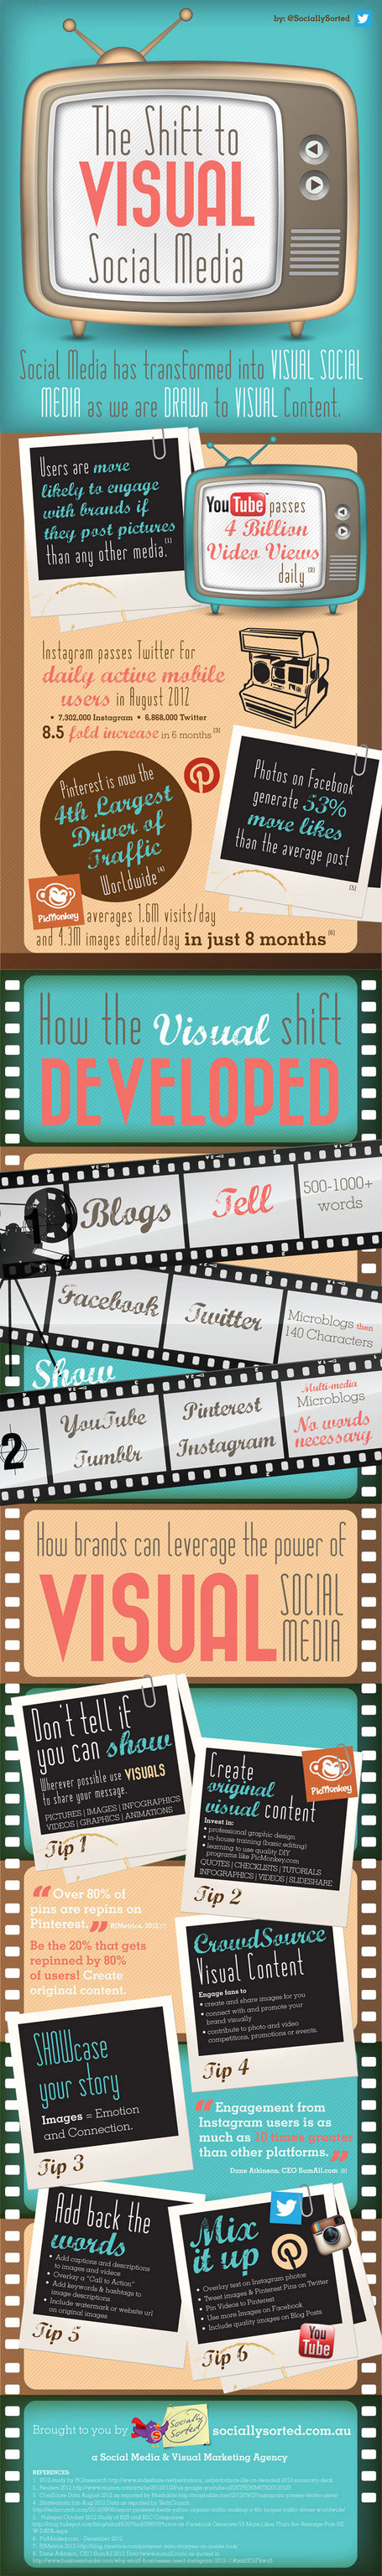 Imagery in Social Media  & How to Leverage Visual Content [infographic] | Social media and education | Scoop.it